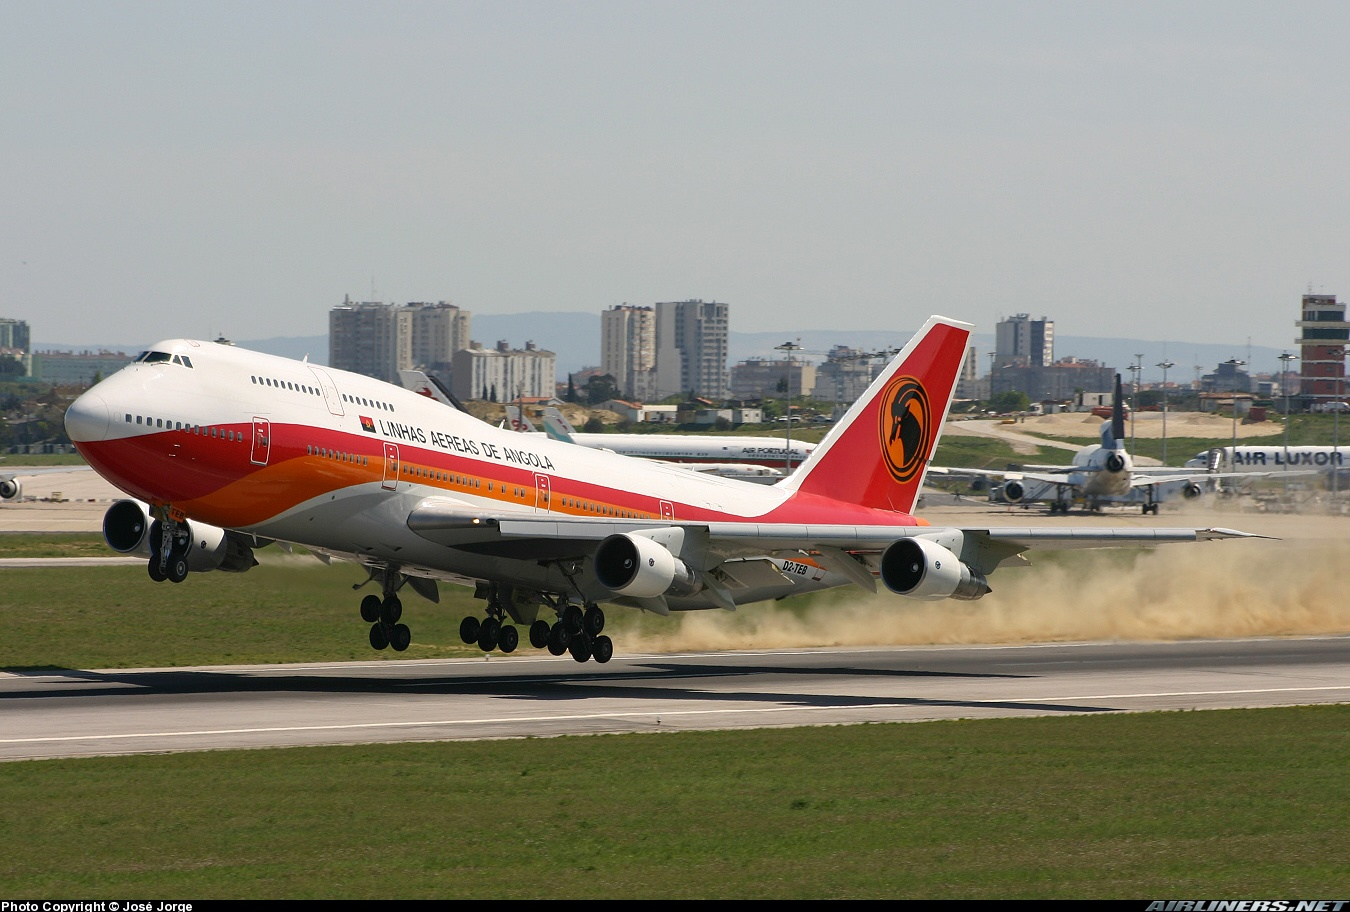 TAAG - Angola Airlines